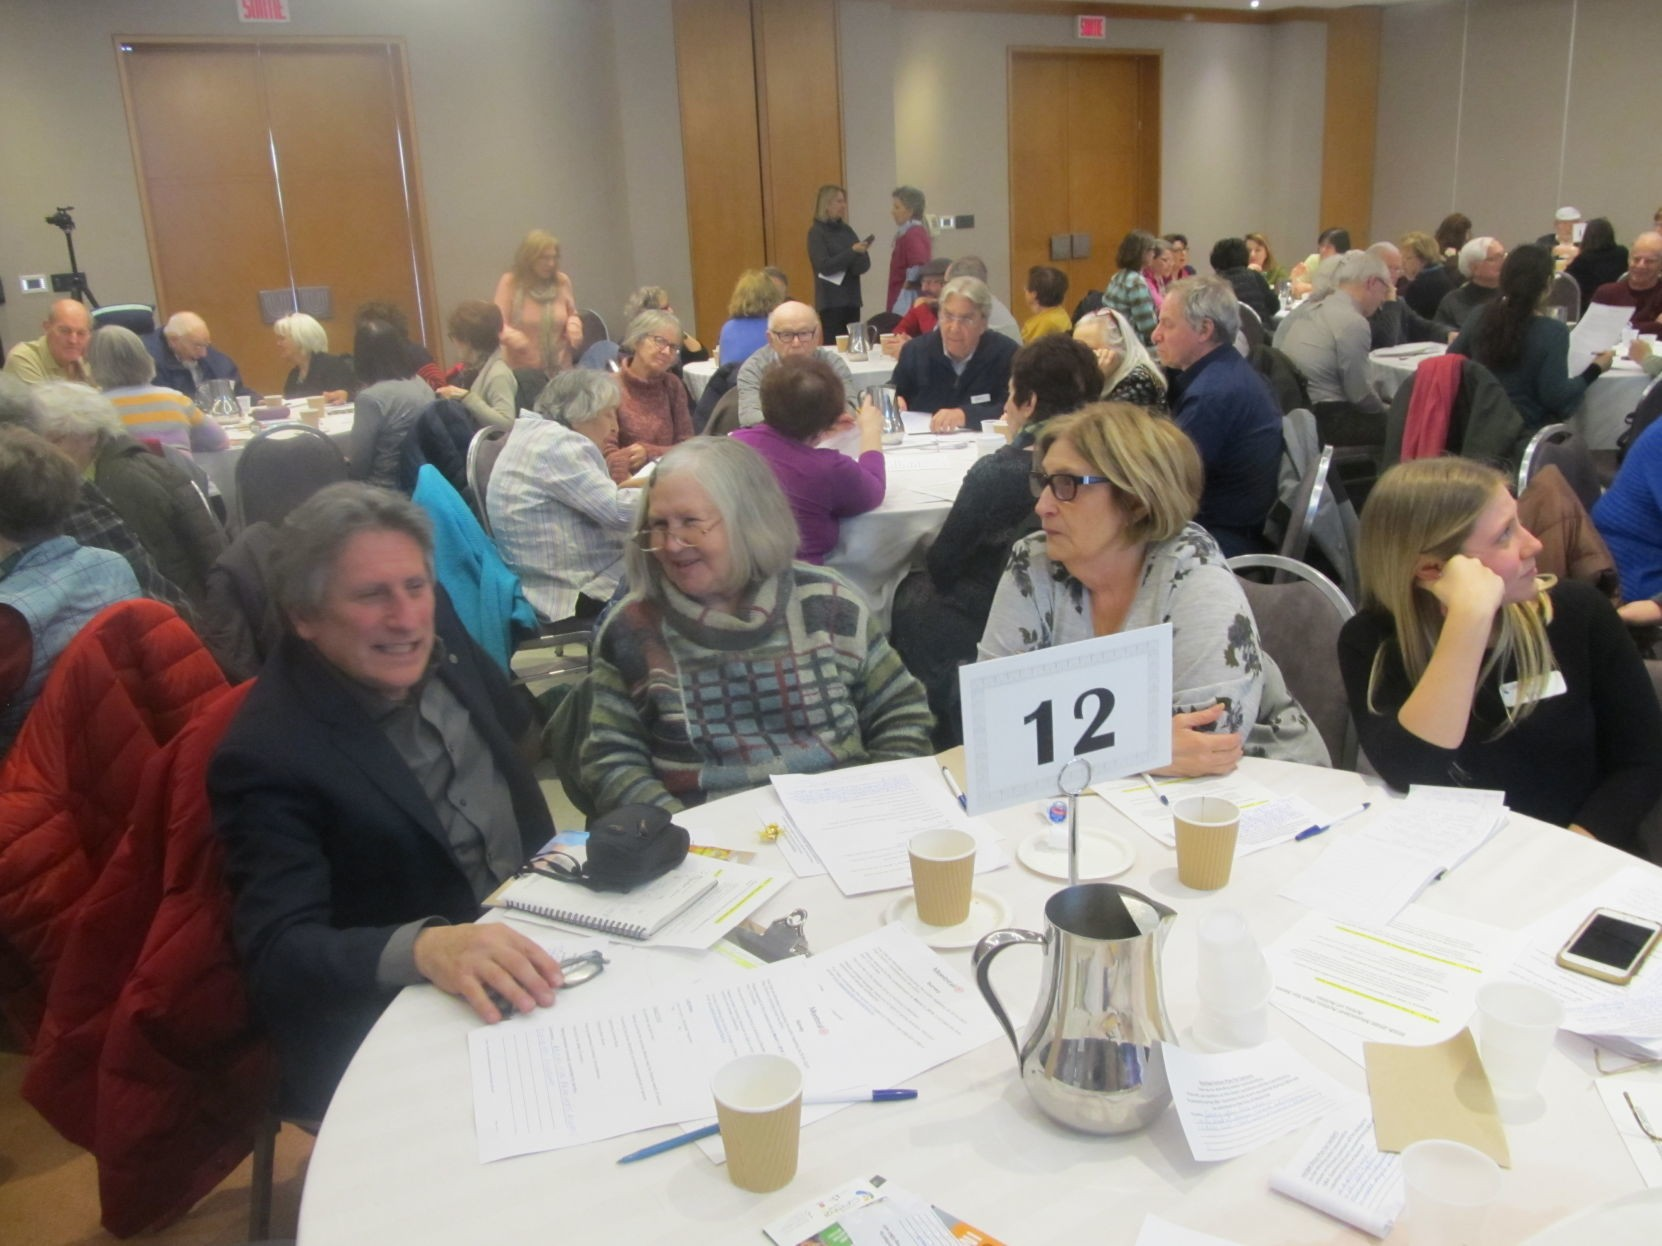 The Suburban: Anglo seniors tell municipal consultation that city ignores them